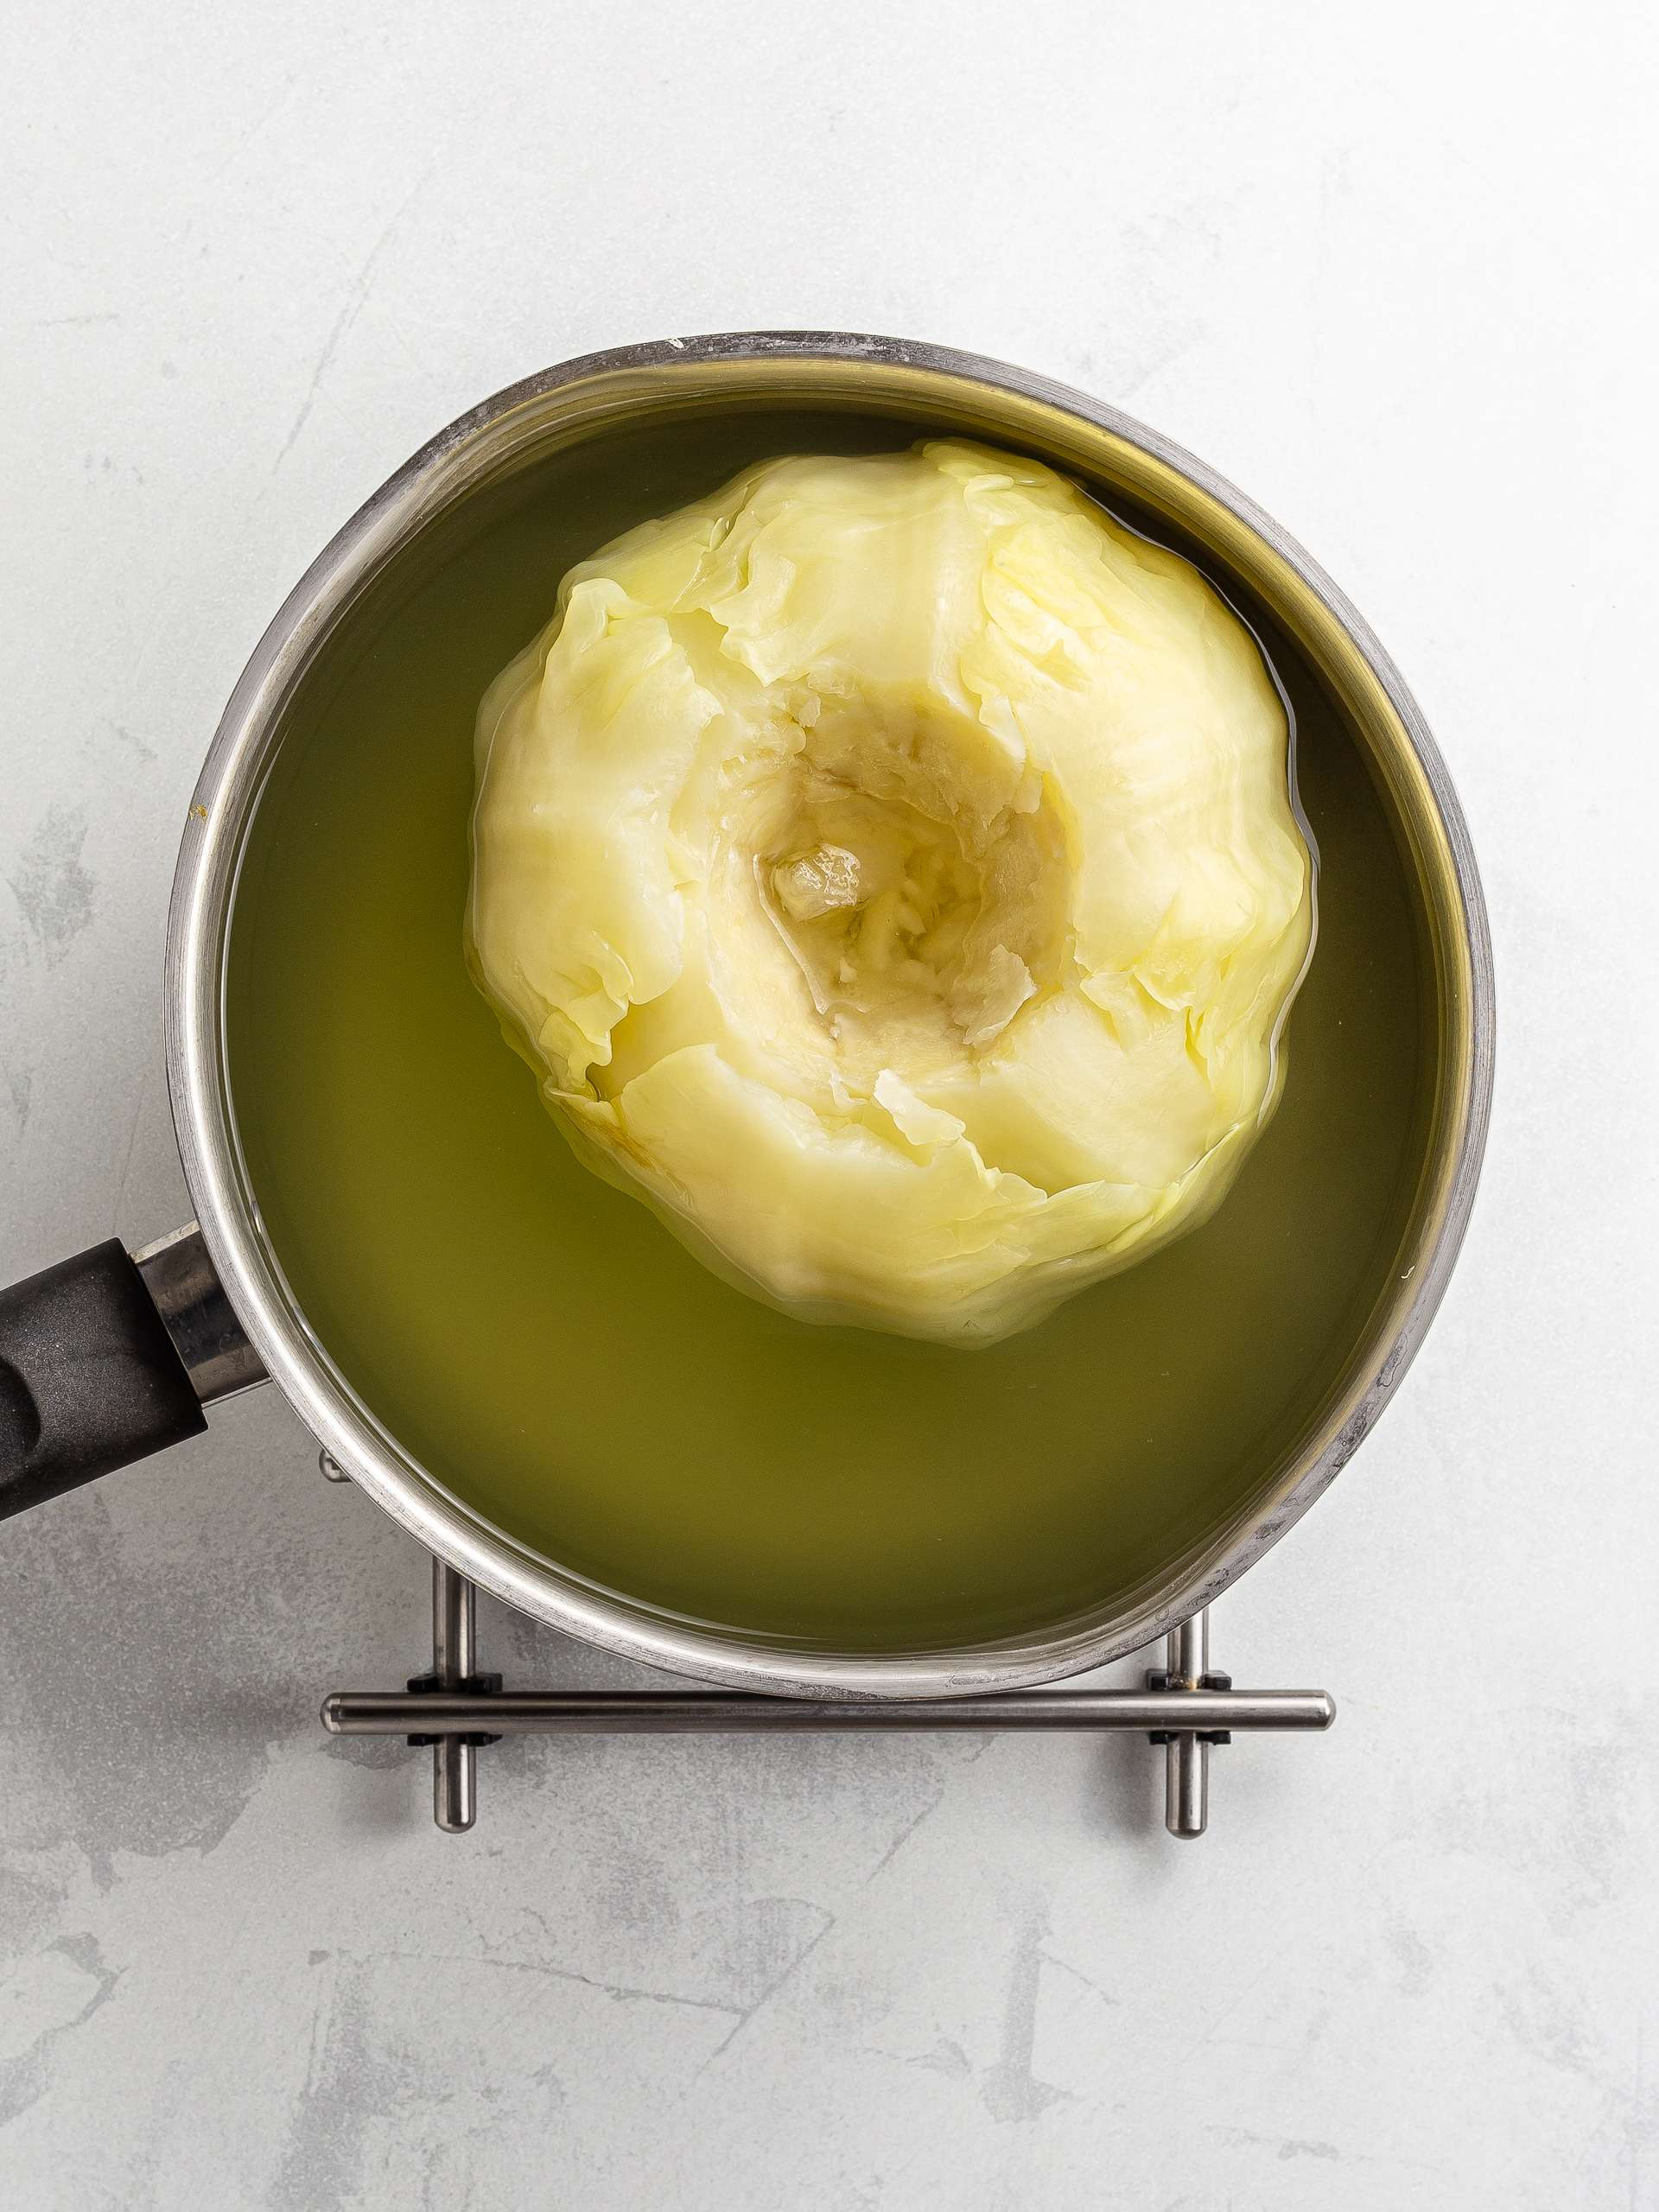 head of cabbage cooking in a pot